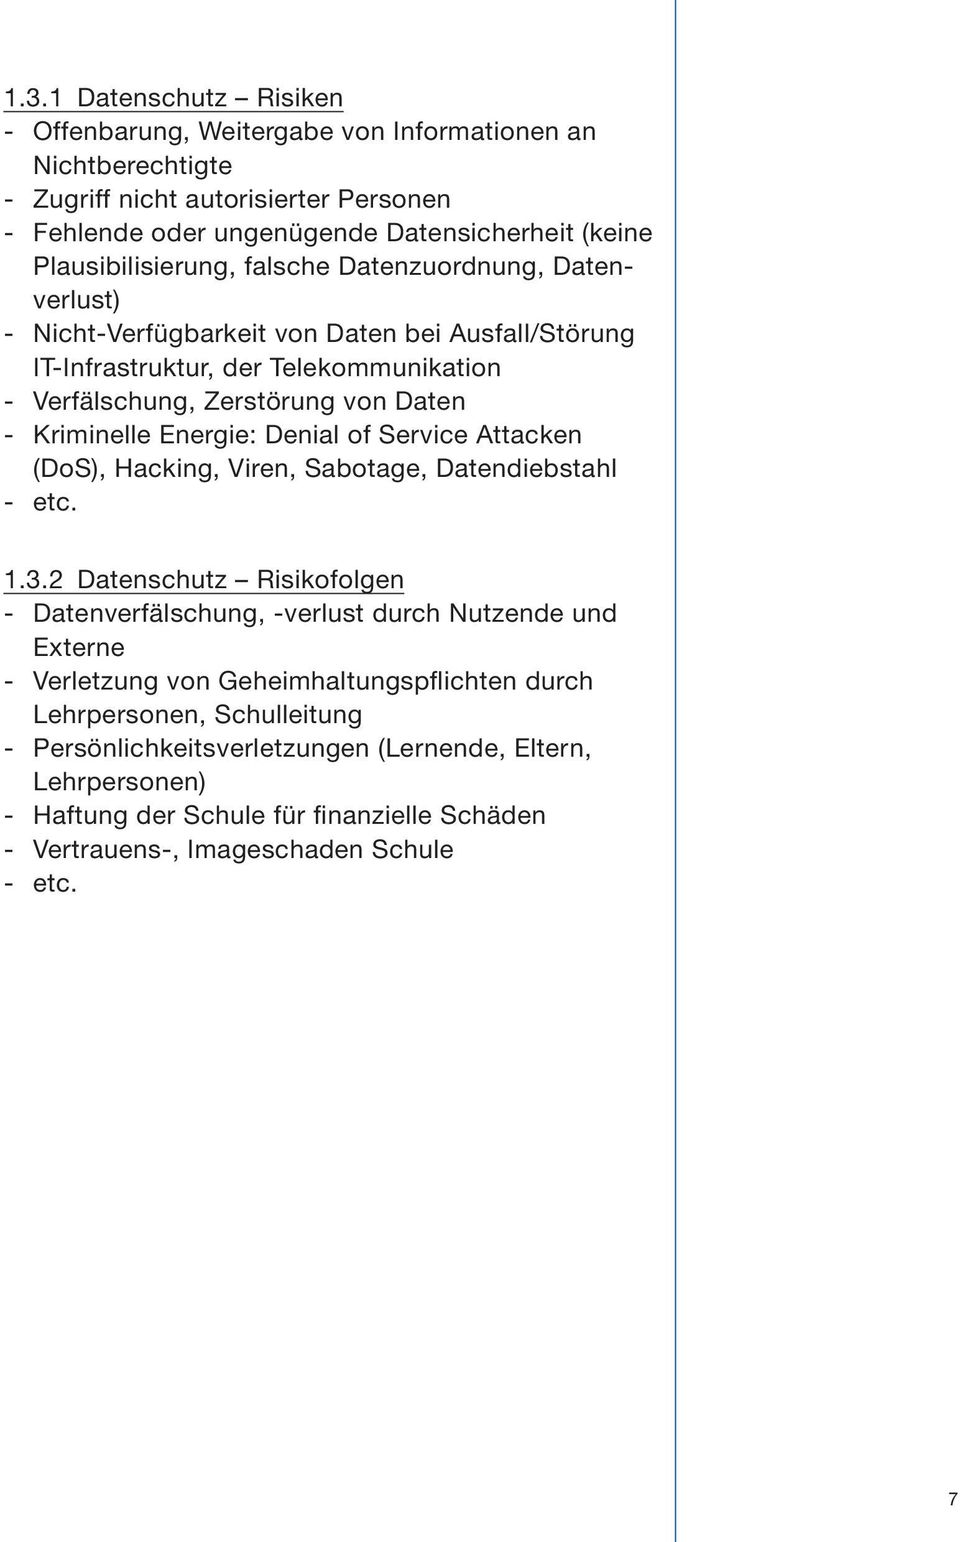 Kriminelle Energie: Denial of Service Attacken (DoS), Hacking, Viren, Sabotage, Datendiebstahl - etc. 1.3.